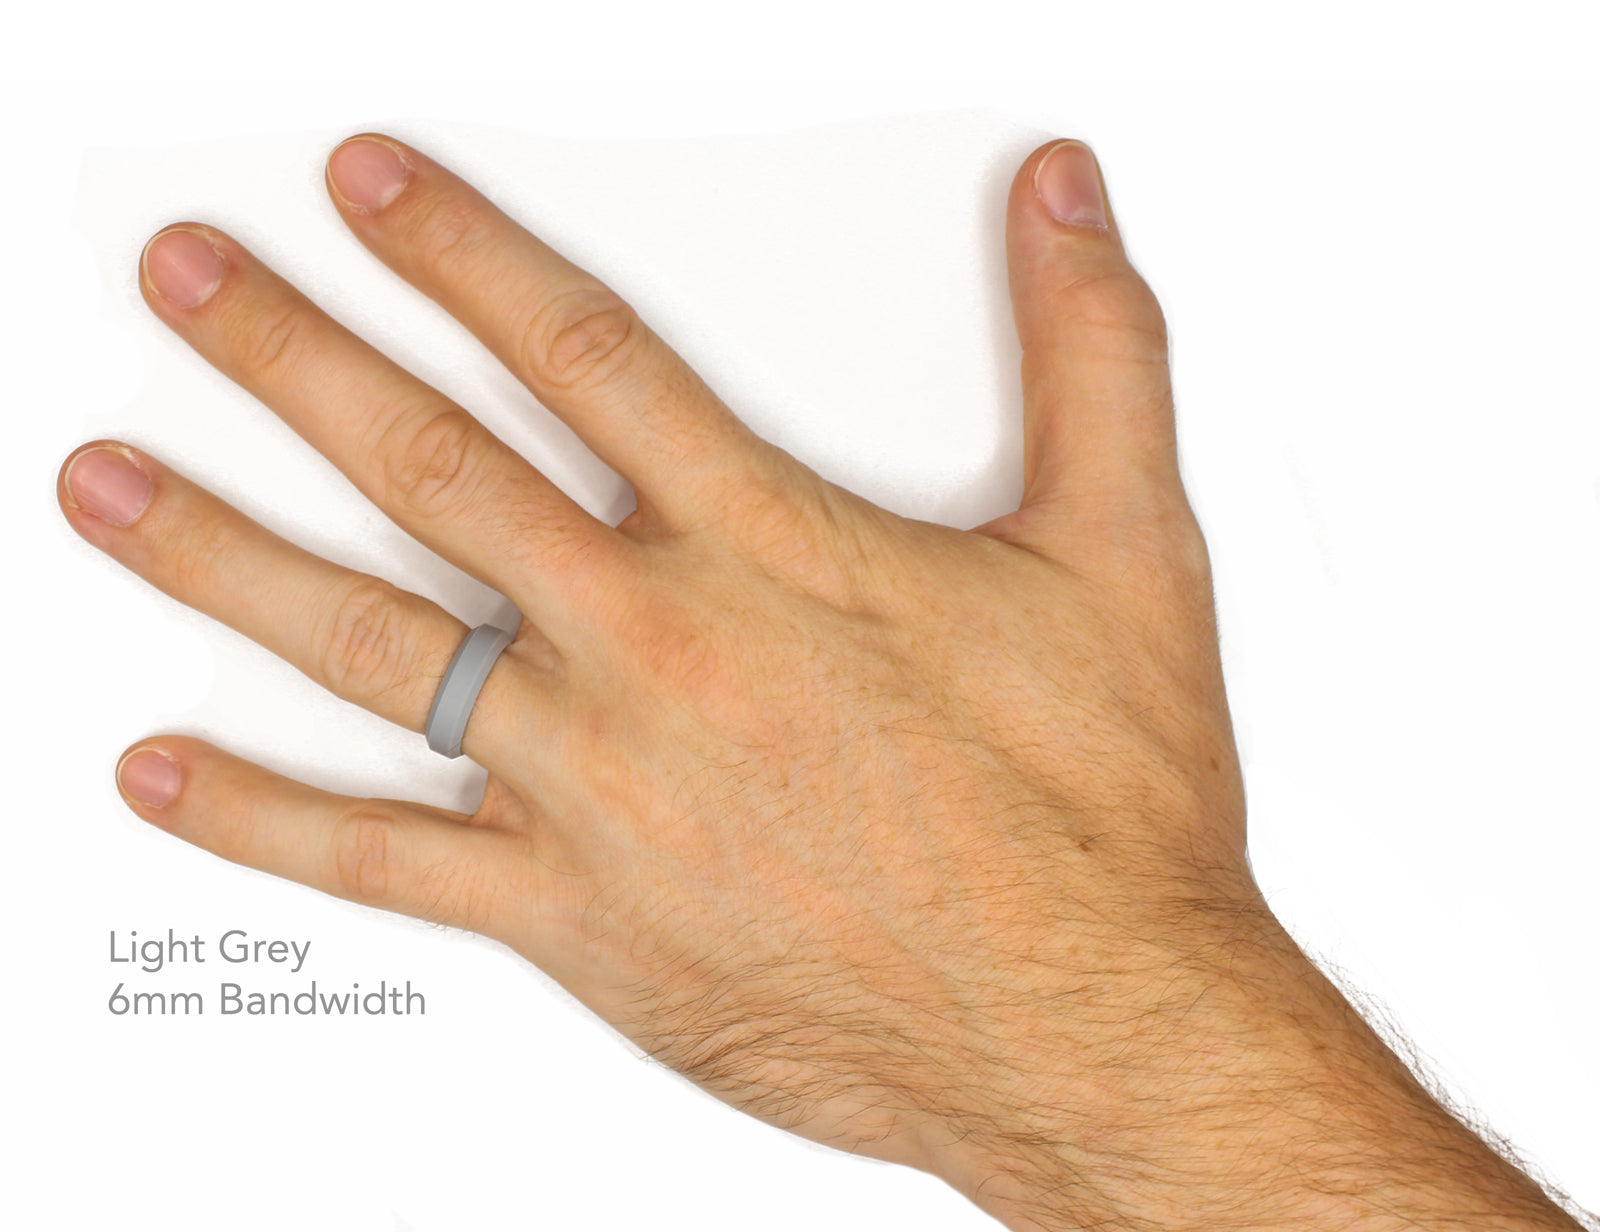 Knot Theory Non-Bulky Silicone Wedding Band in Light Grey - 6mm or 8mm Bandwidth